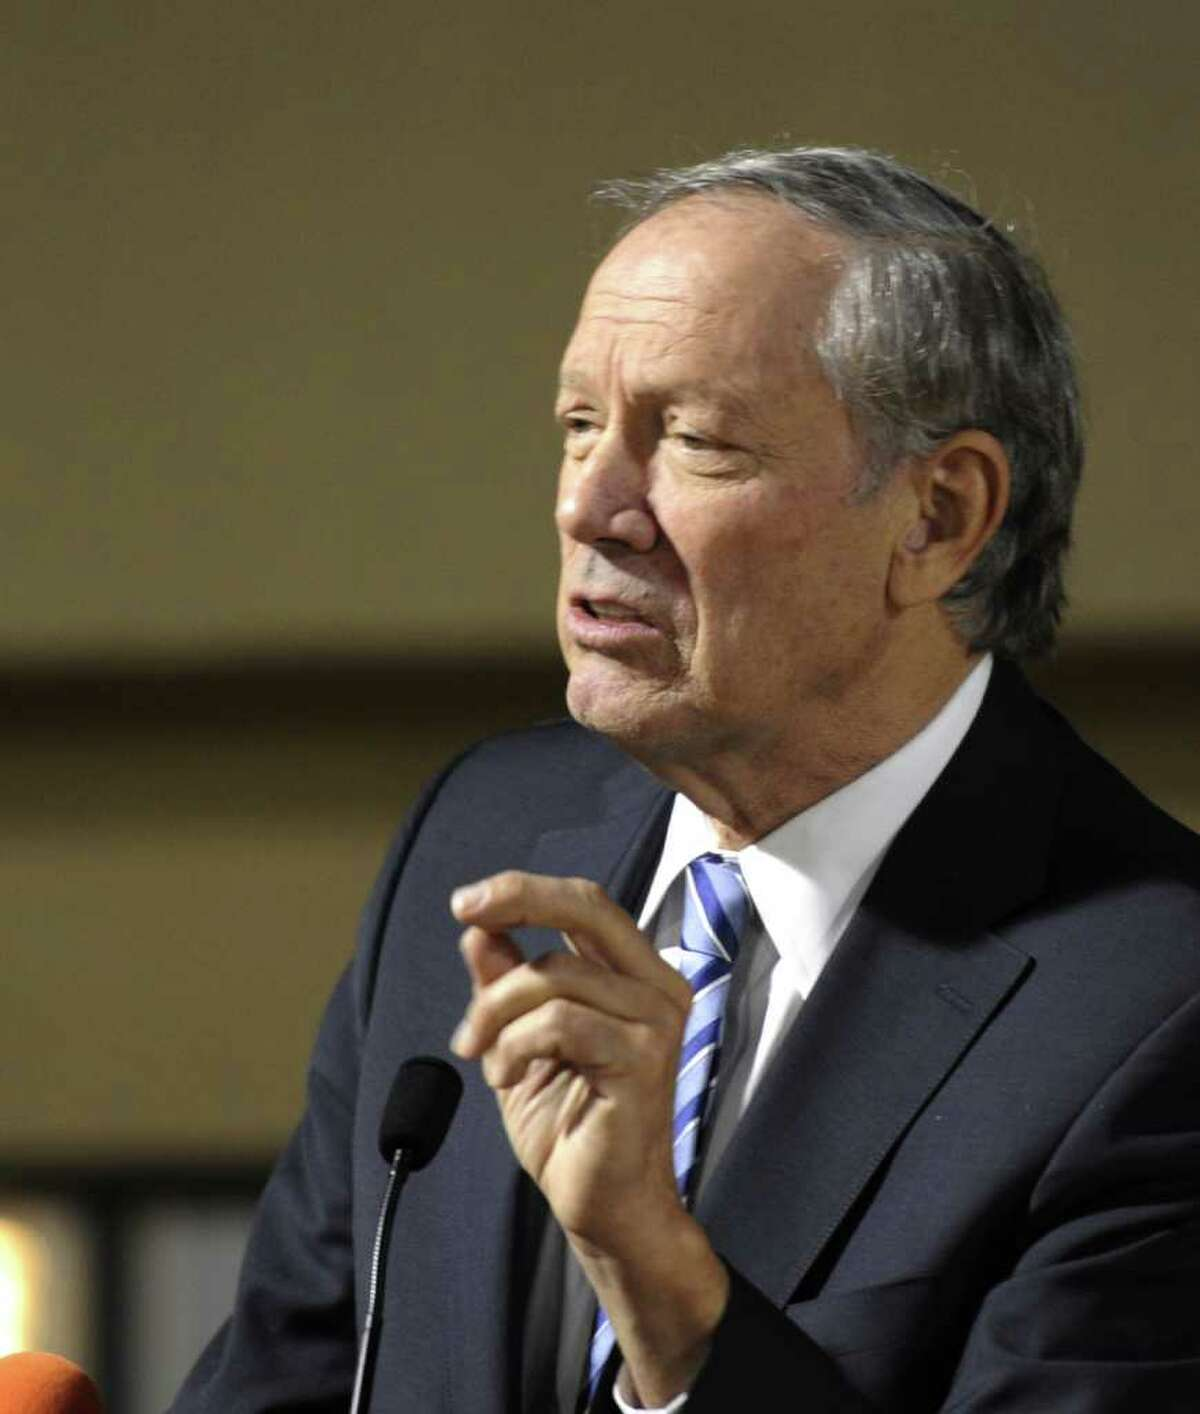 Former New York Governor George Pataki speaks at the NYS Conservative Party luncheon at the Holiday Inn in Colonie, N.Y. Jan. 30, 2012. ( Skip Dickstein/Times Union)